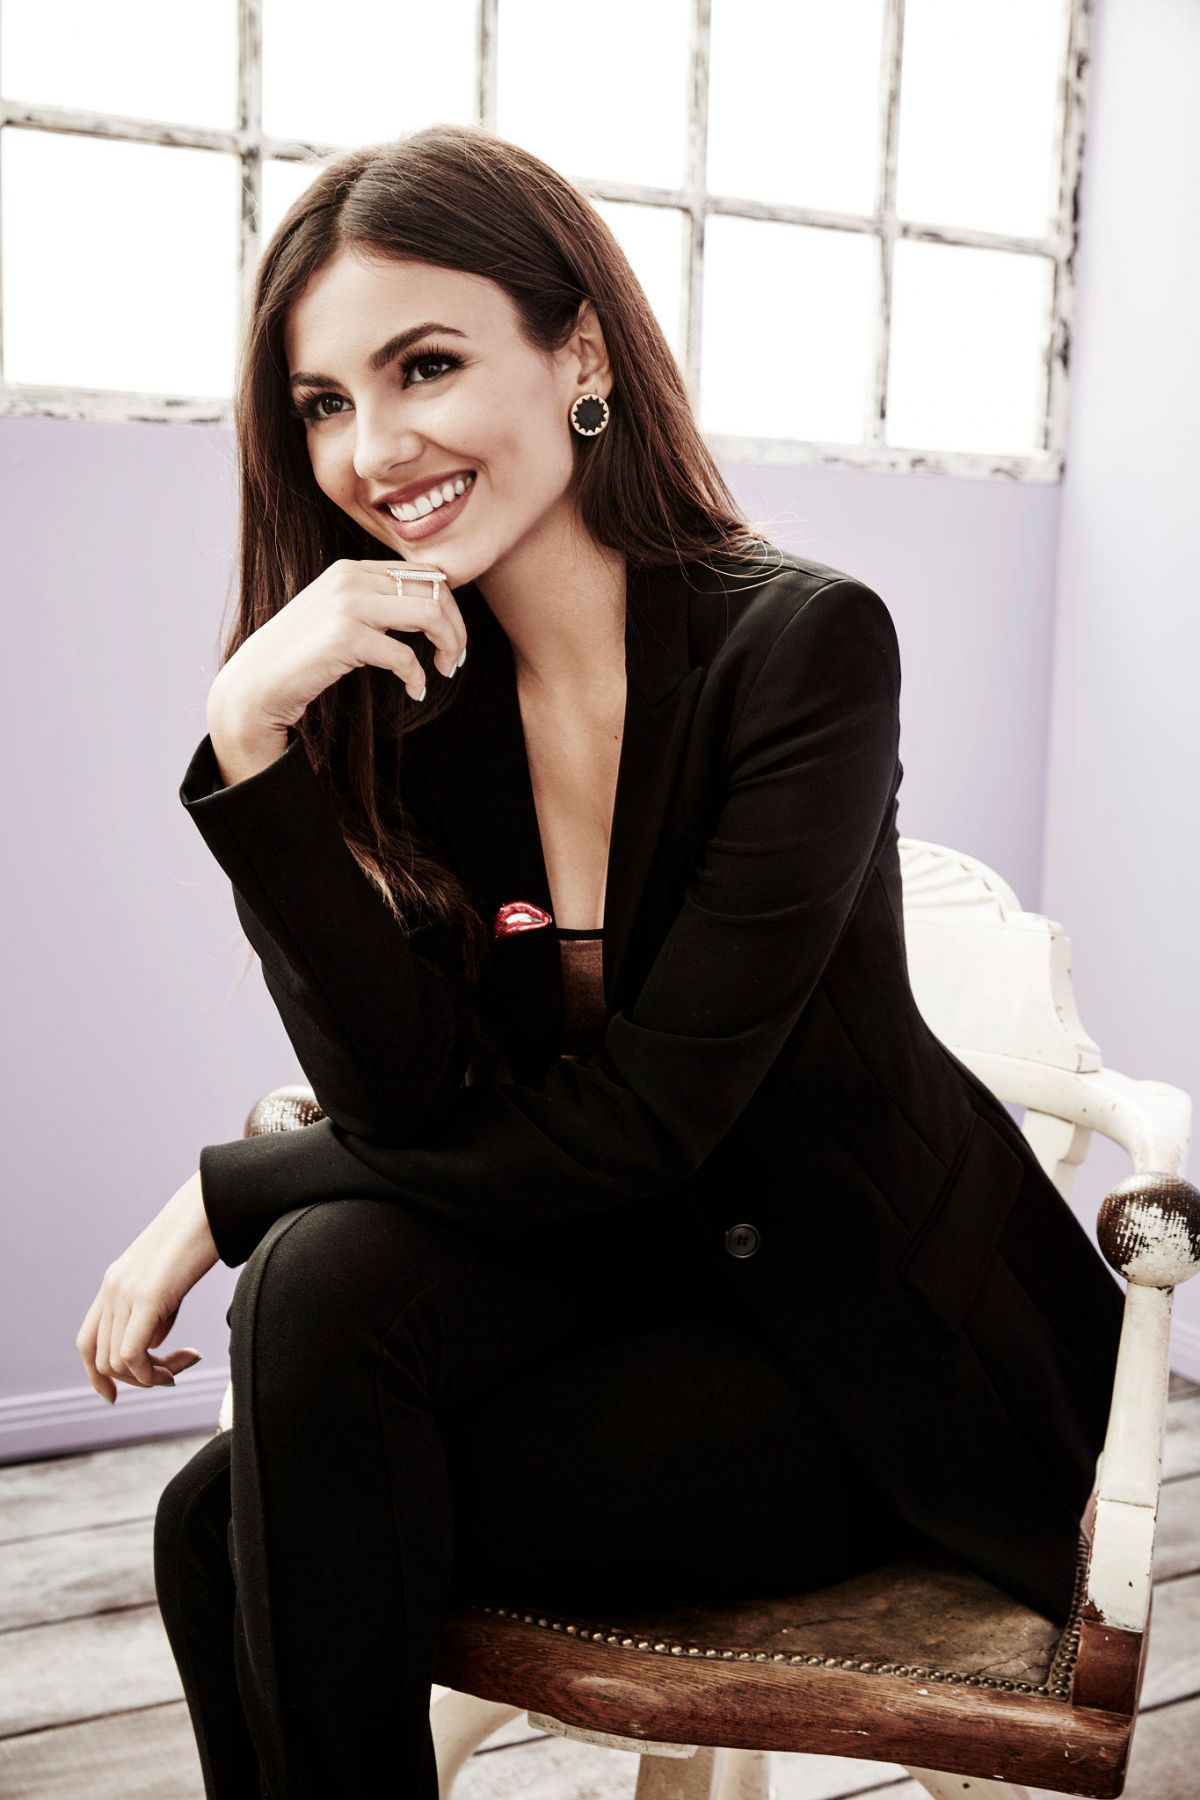 VICTORIA JUSTICE The Rocky Horror Picture Show Summer TCA 2016 Photoshoot